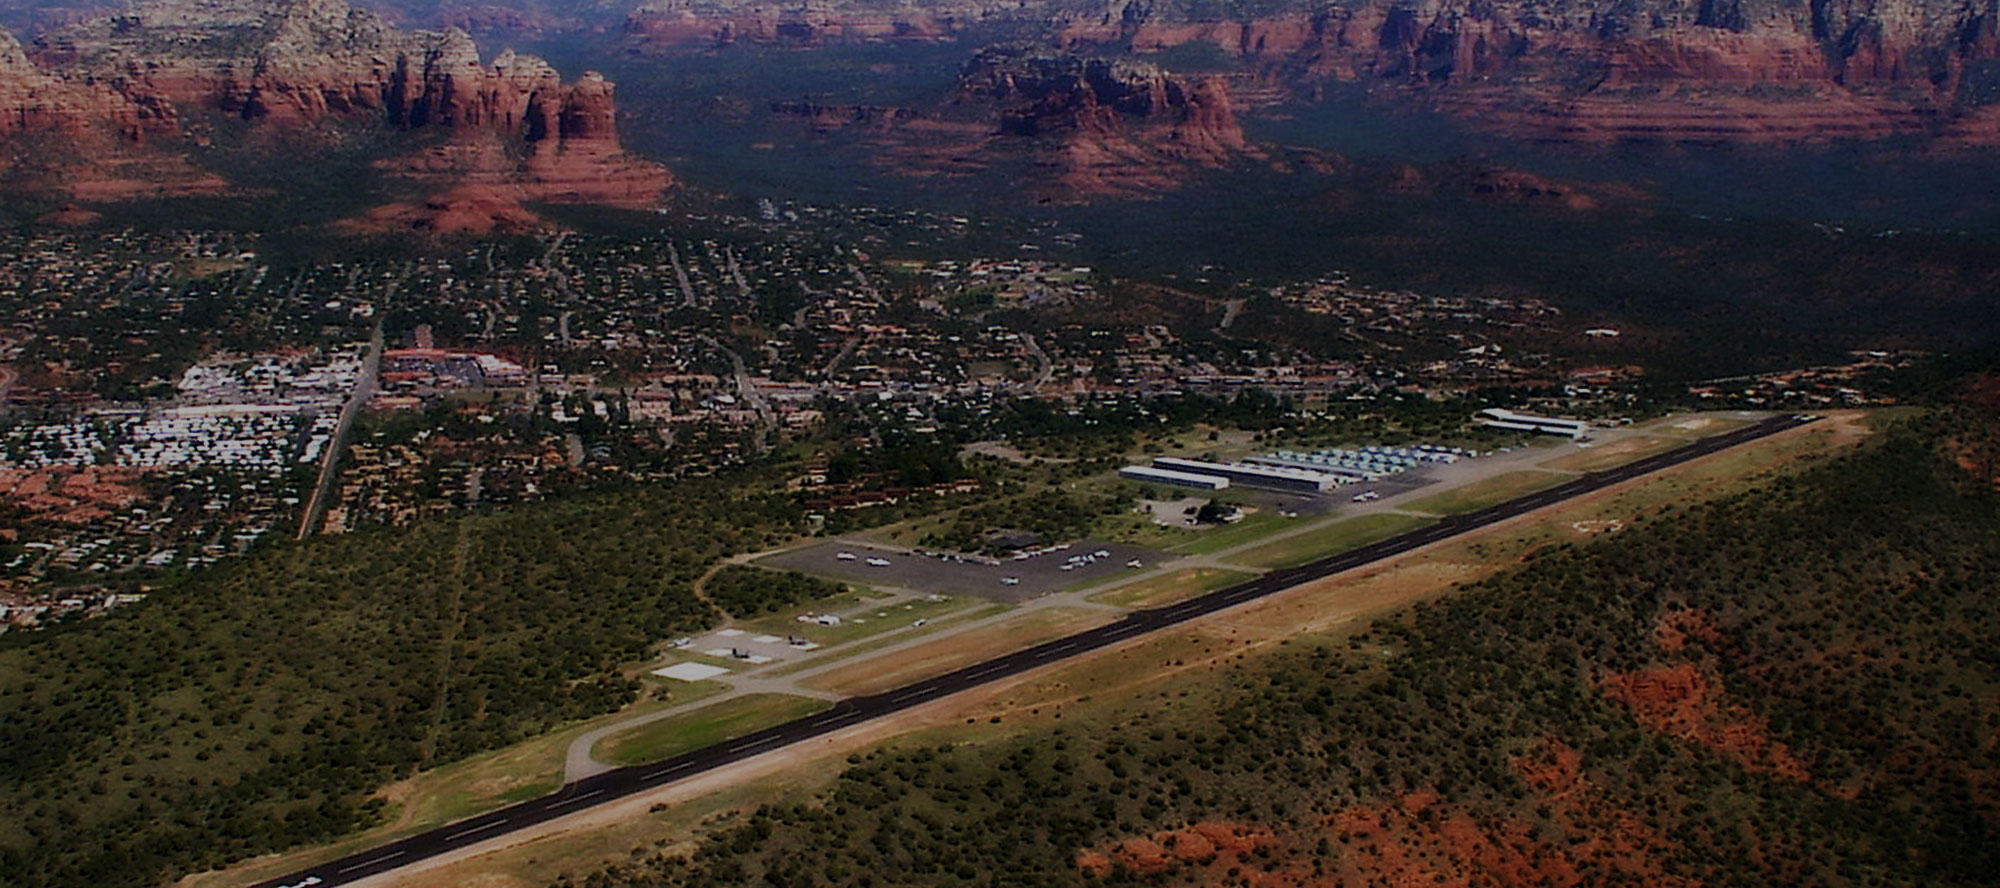 Sedona-Oak Creek Airport Authority